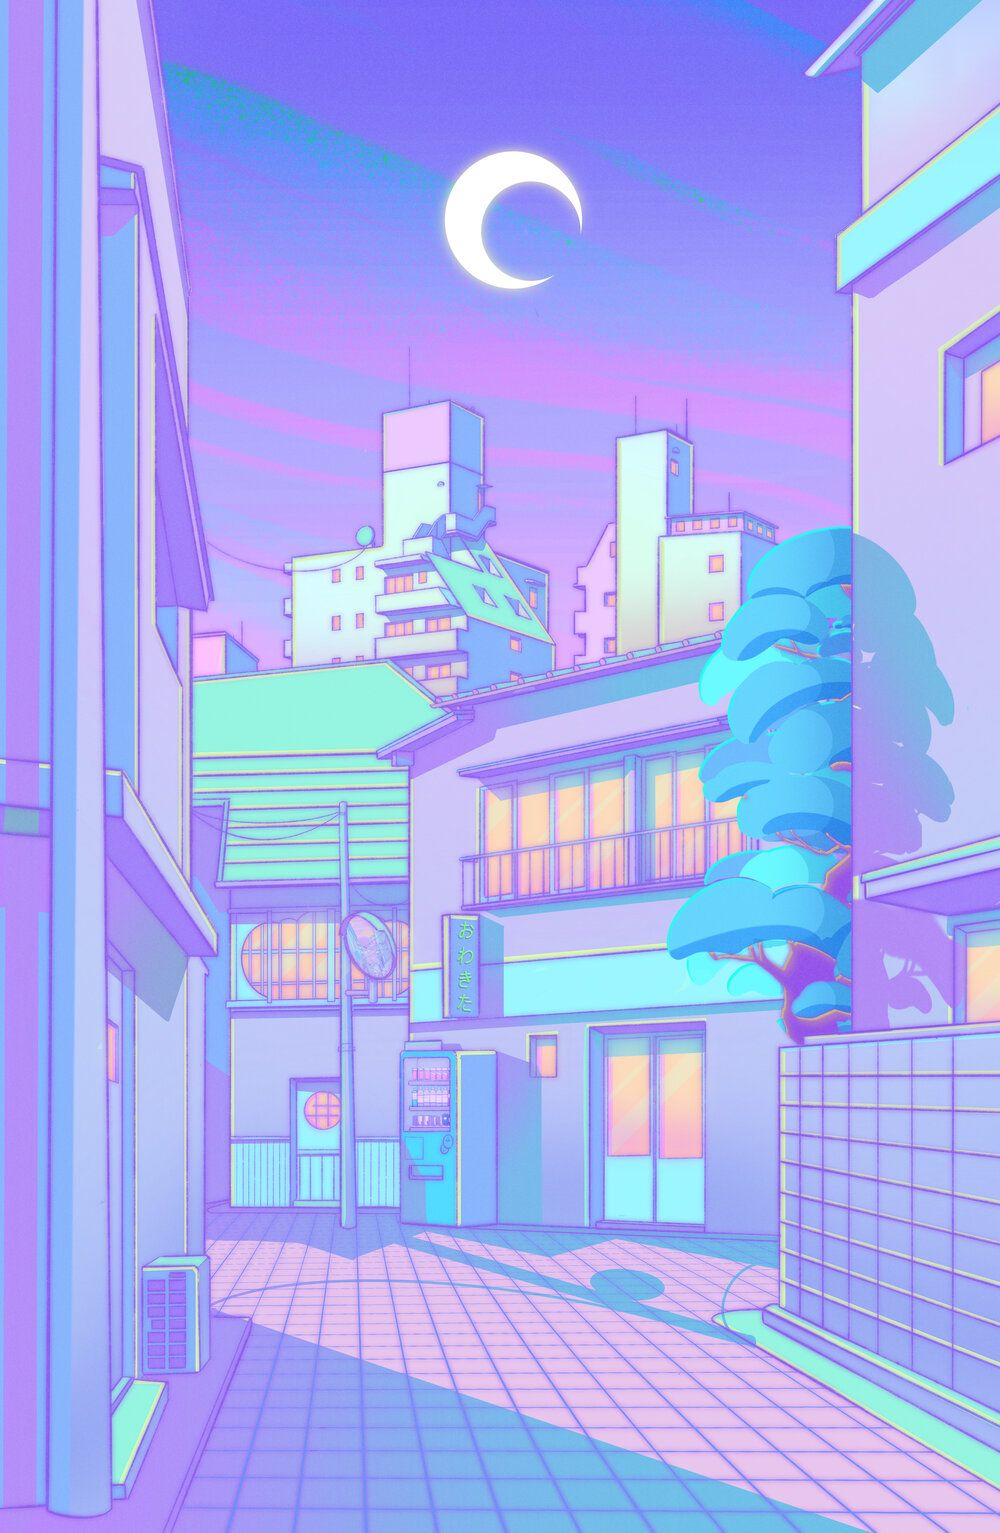 Download for free 45+ aesthetic anime wallpapers. Elora Pautrat - illustrations in 2020   Cute pastel ...